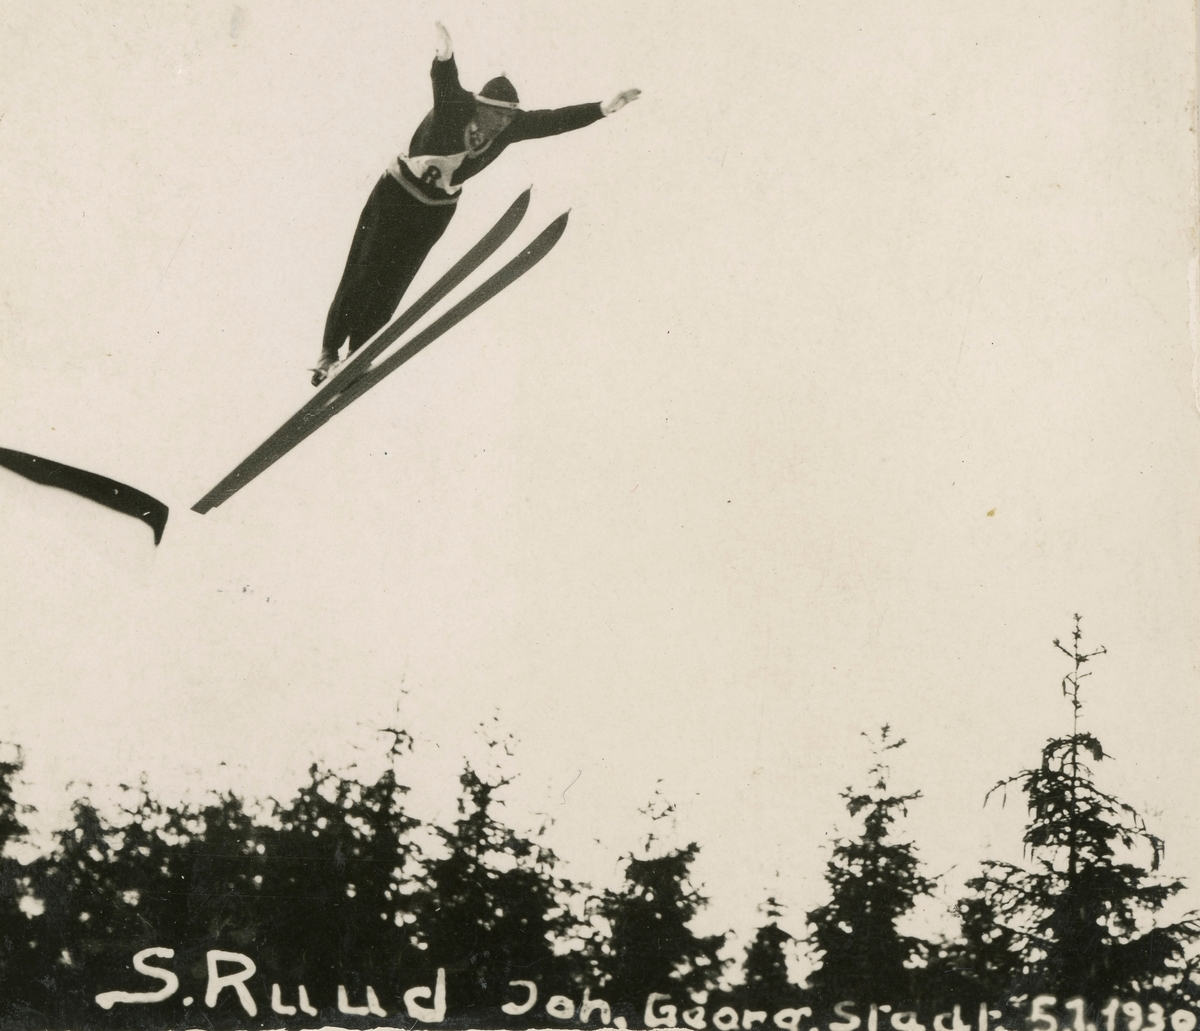 Athlete Sigmund Ruud jumping at Johangeorgenstadt